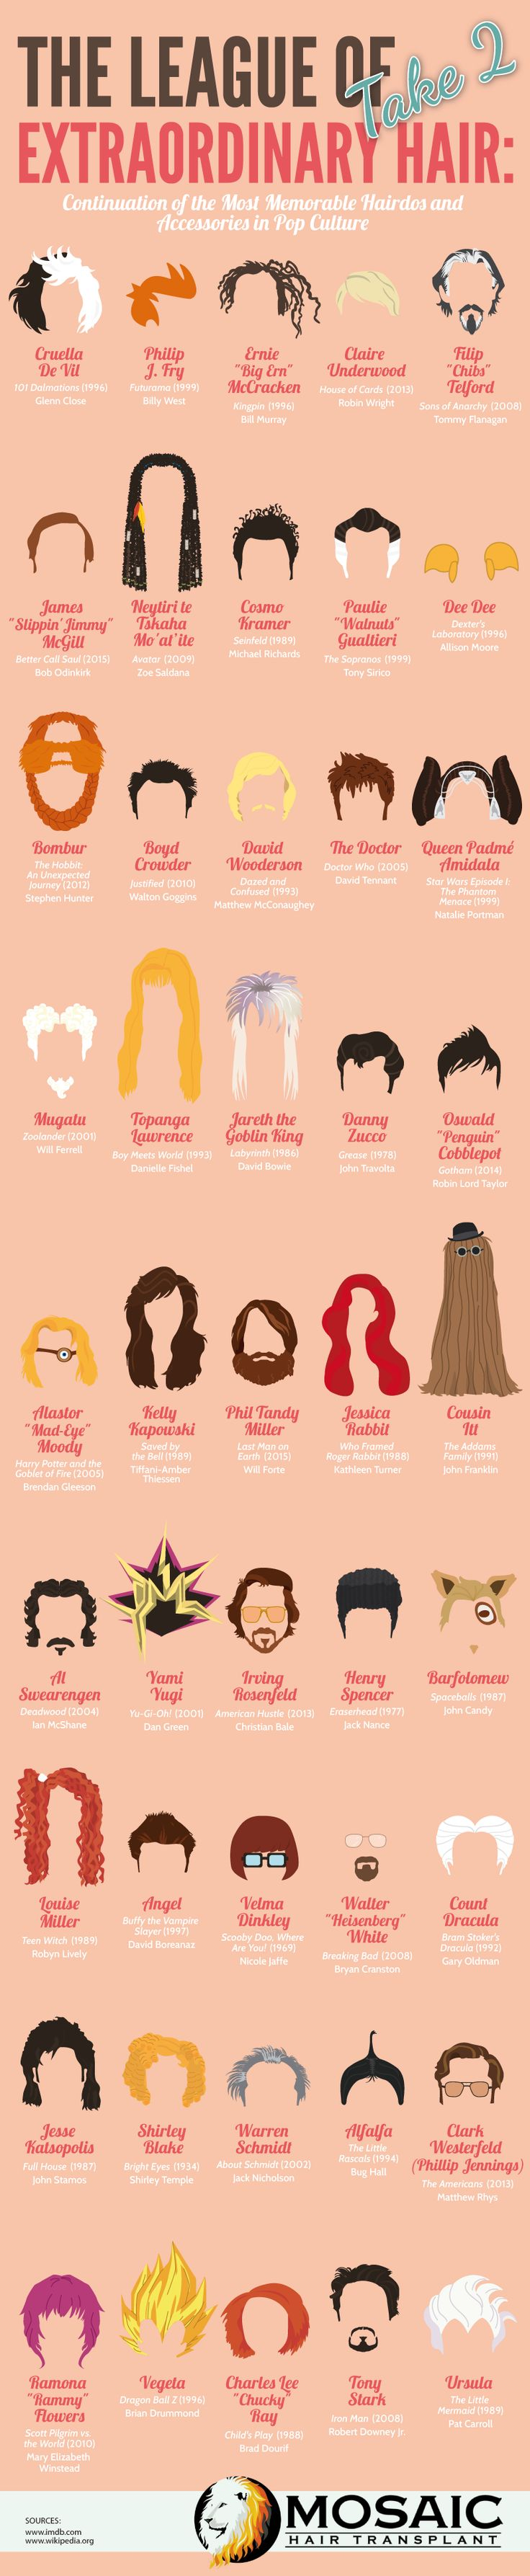 The League of Extraordinary Hair: Take 2 #infographic #Fashion #Lifestyle